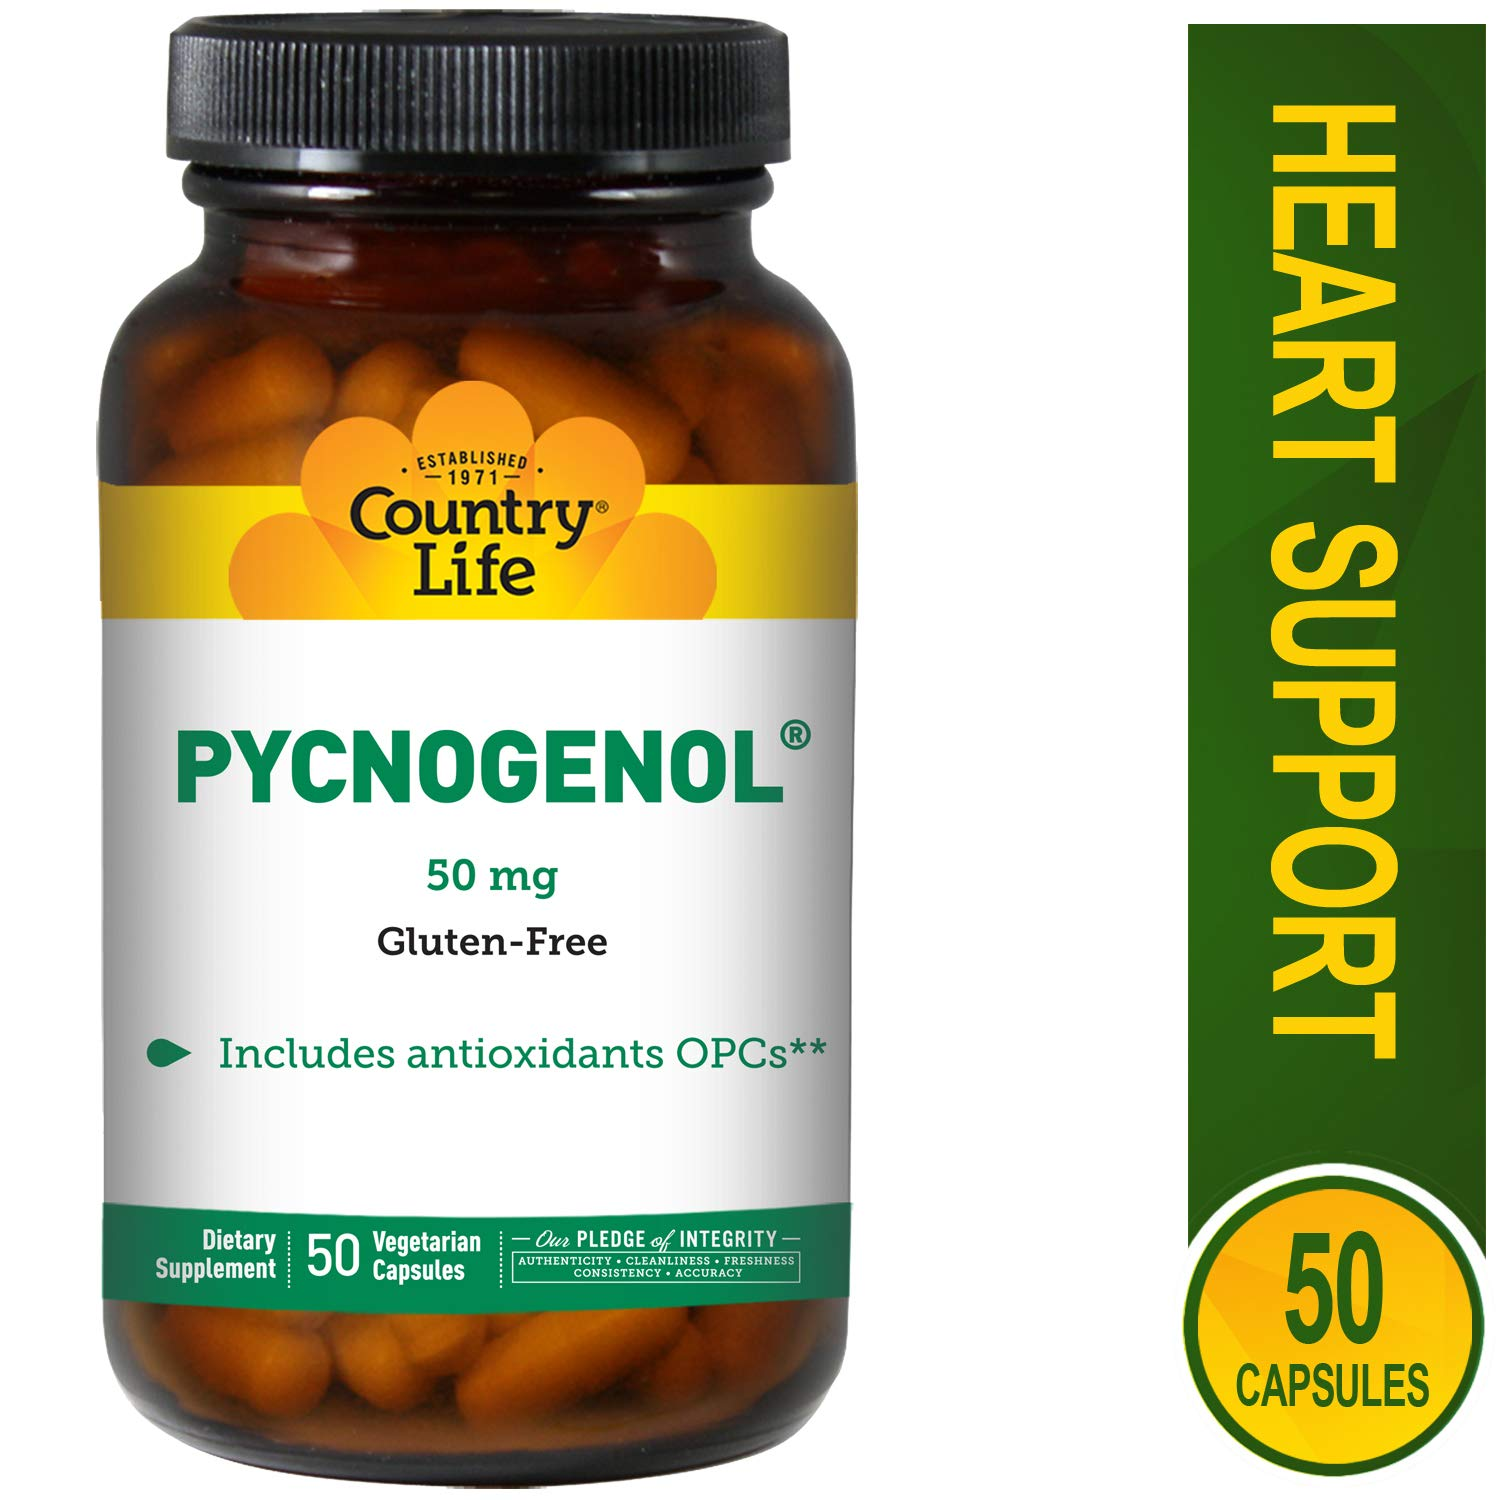 Country Life Pycnogenol, 50 mg - 50 Vegetarian Capsules by Country Life